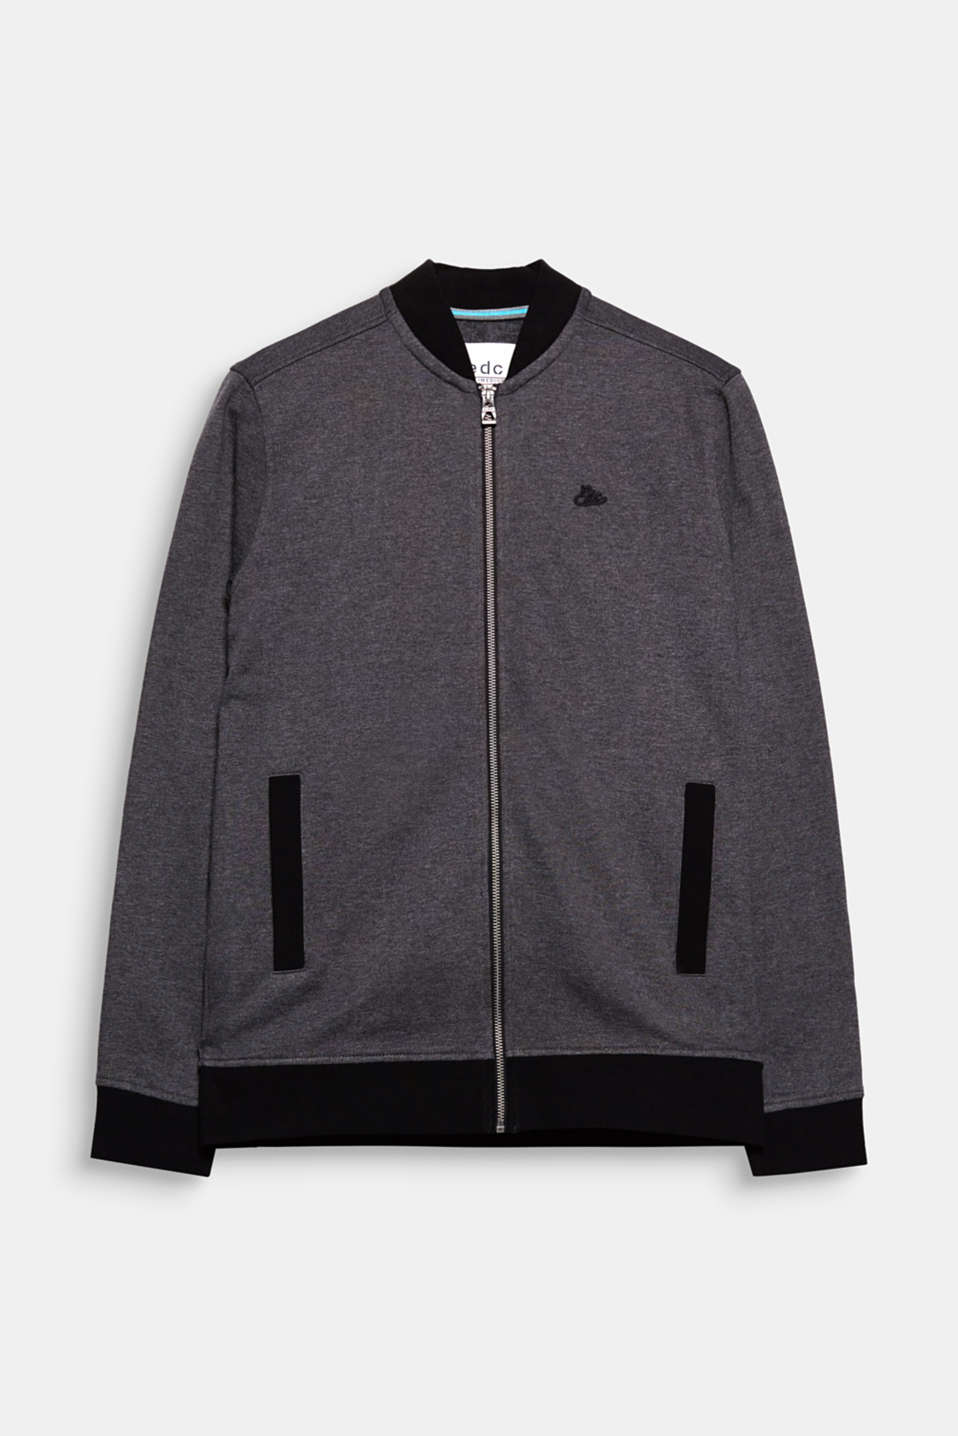 An urban classic! Cardigan with a stand-up collar, made of slightly melange sweatshirt fabric.